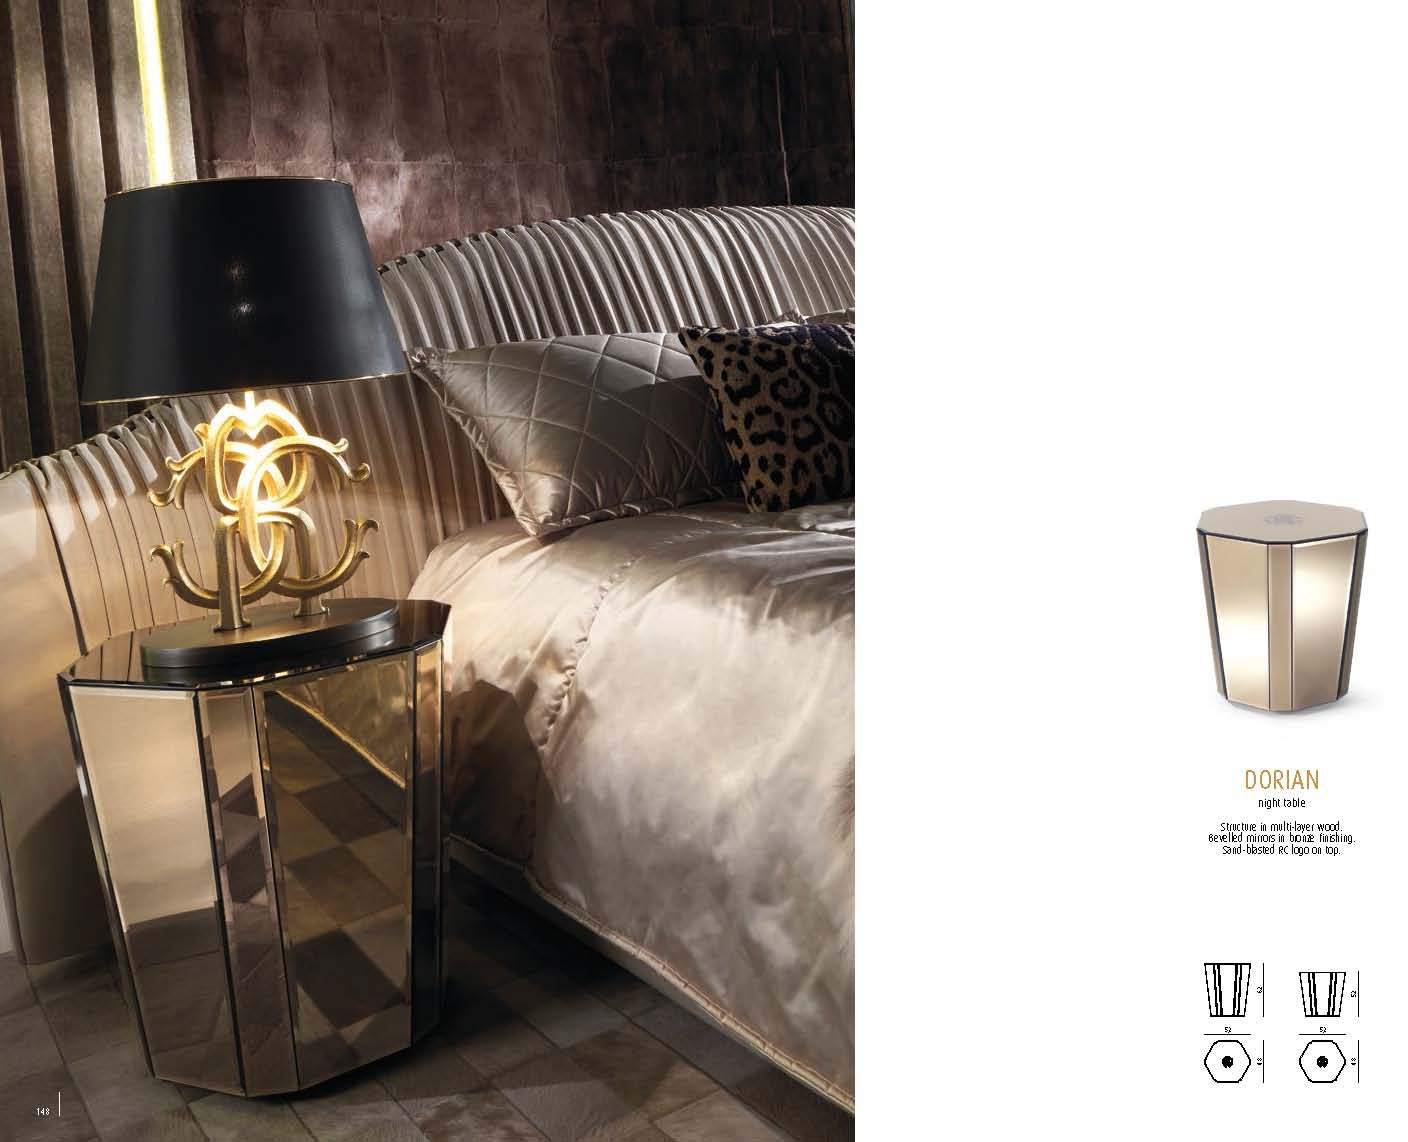 Roberto Cavalli Furniture  ROBERTO CAVALLI Furniture SHARPEI SeriesFurniture from Italy